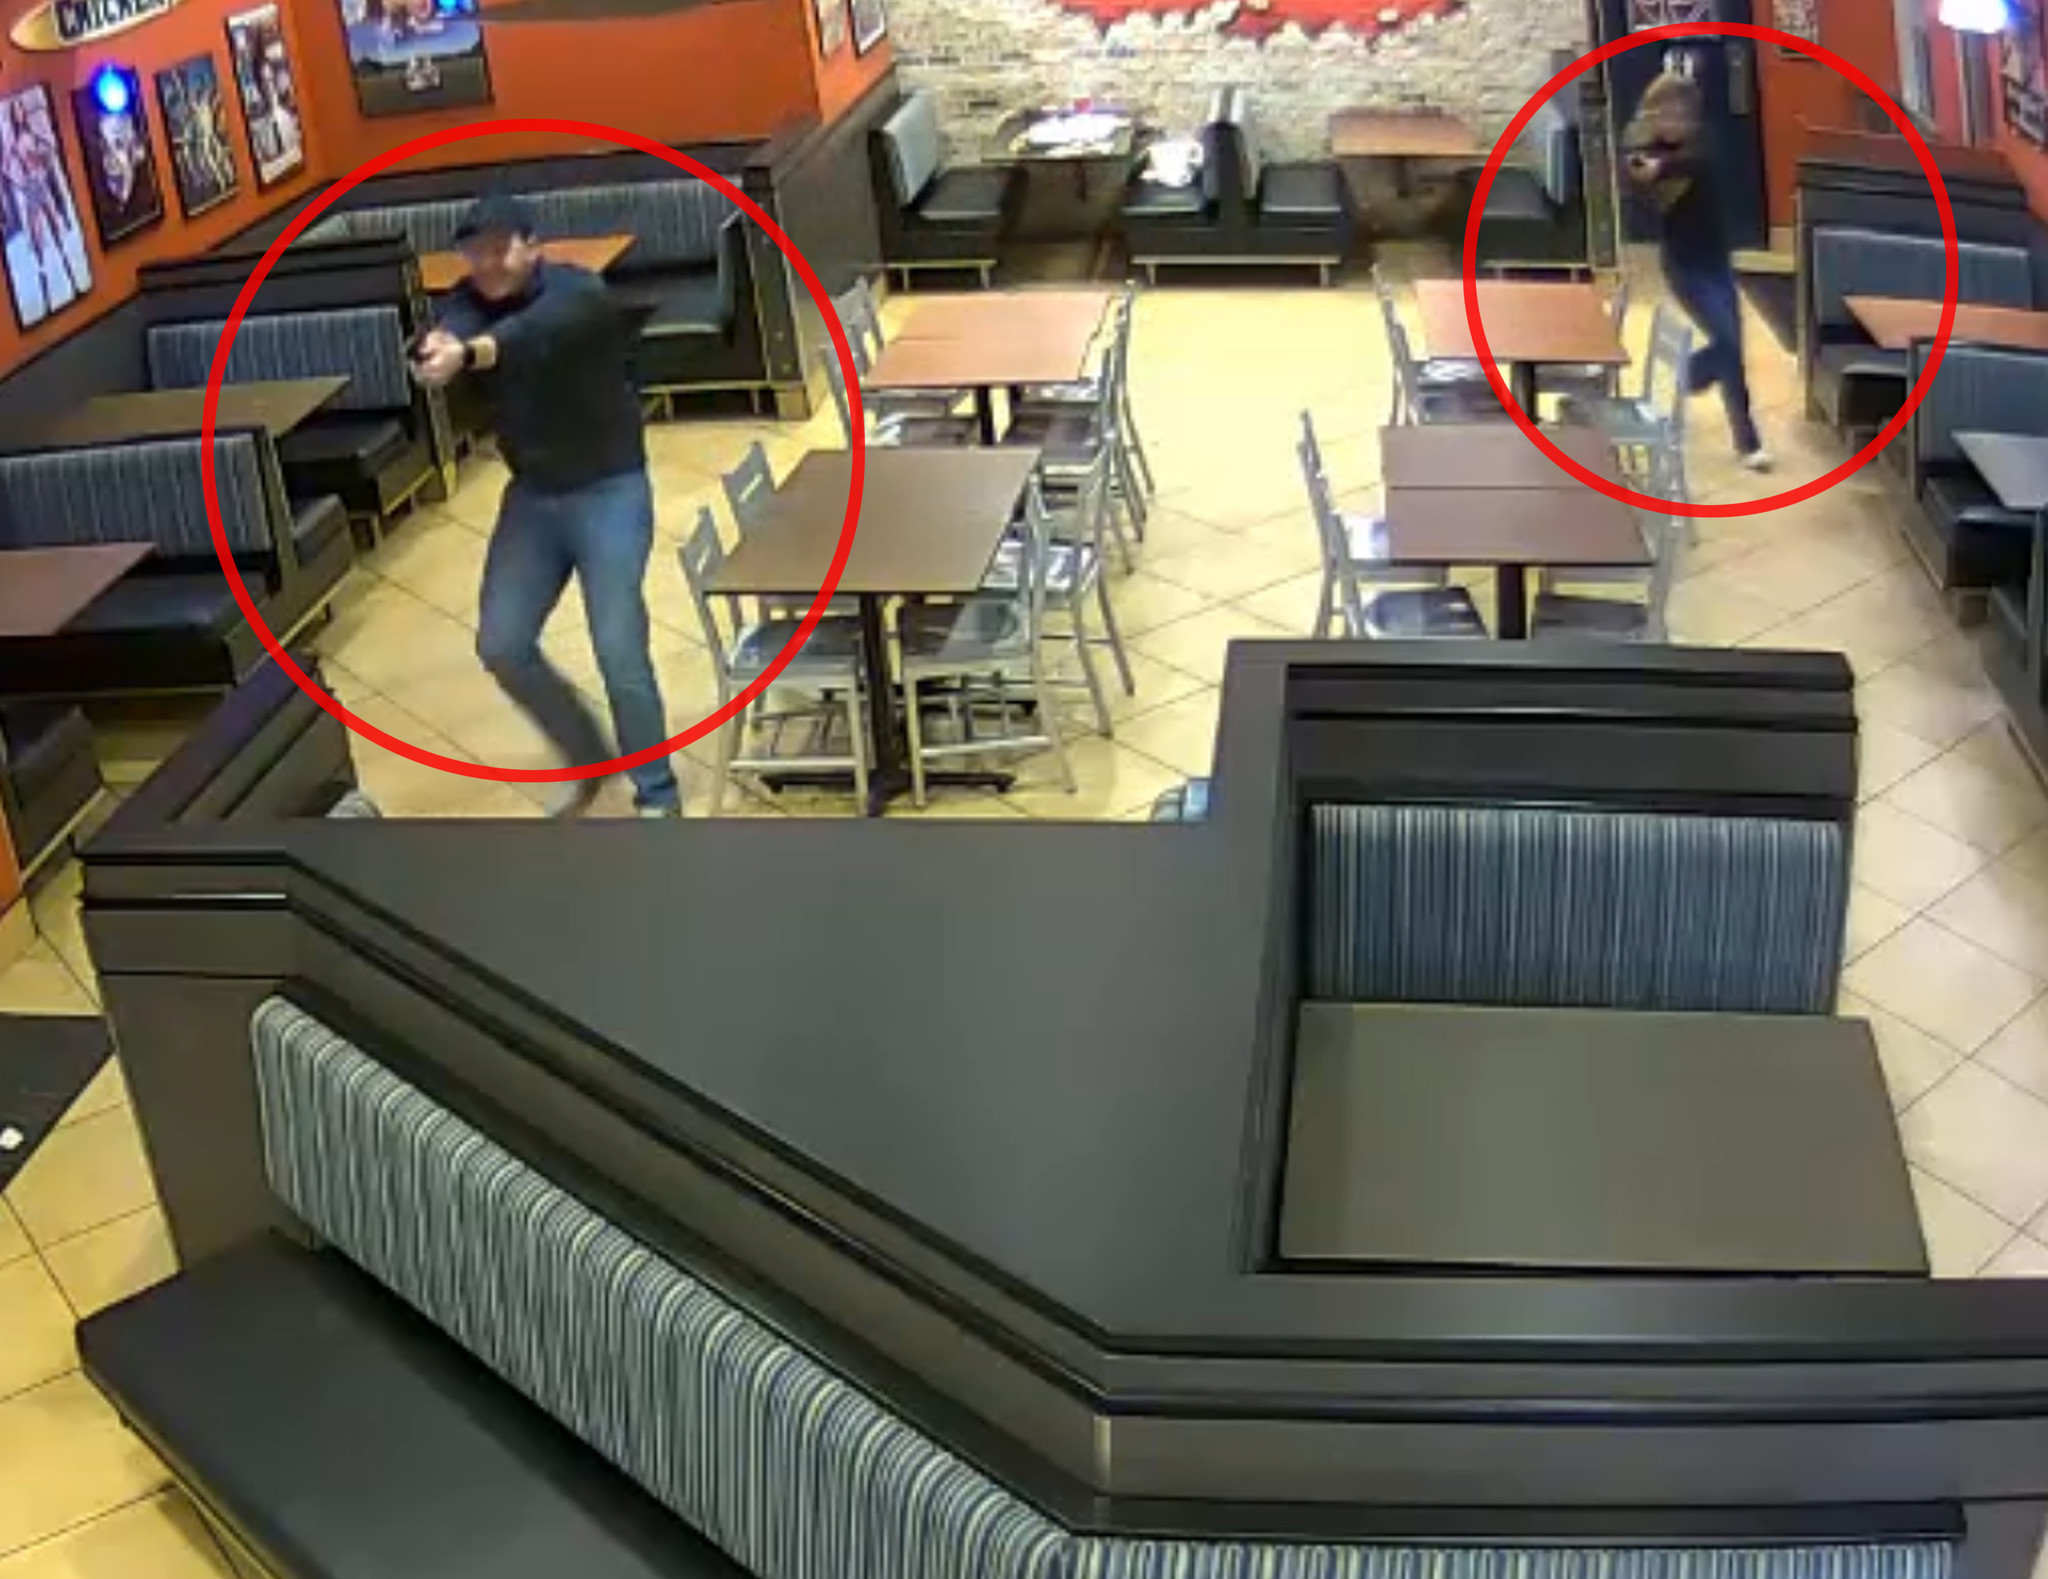 SEE IT: Dramatic footage shows newlywed cops interrupt their date night to break up an armed robbery